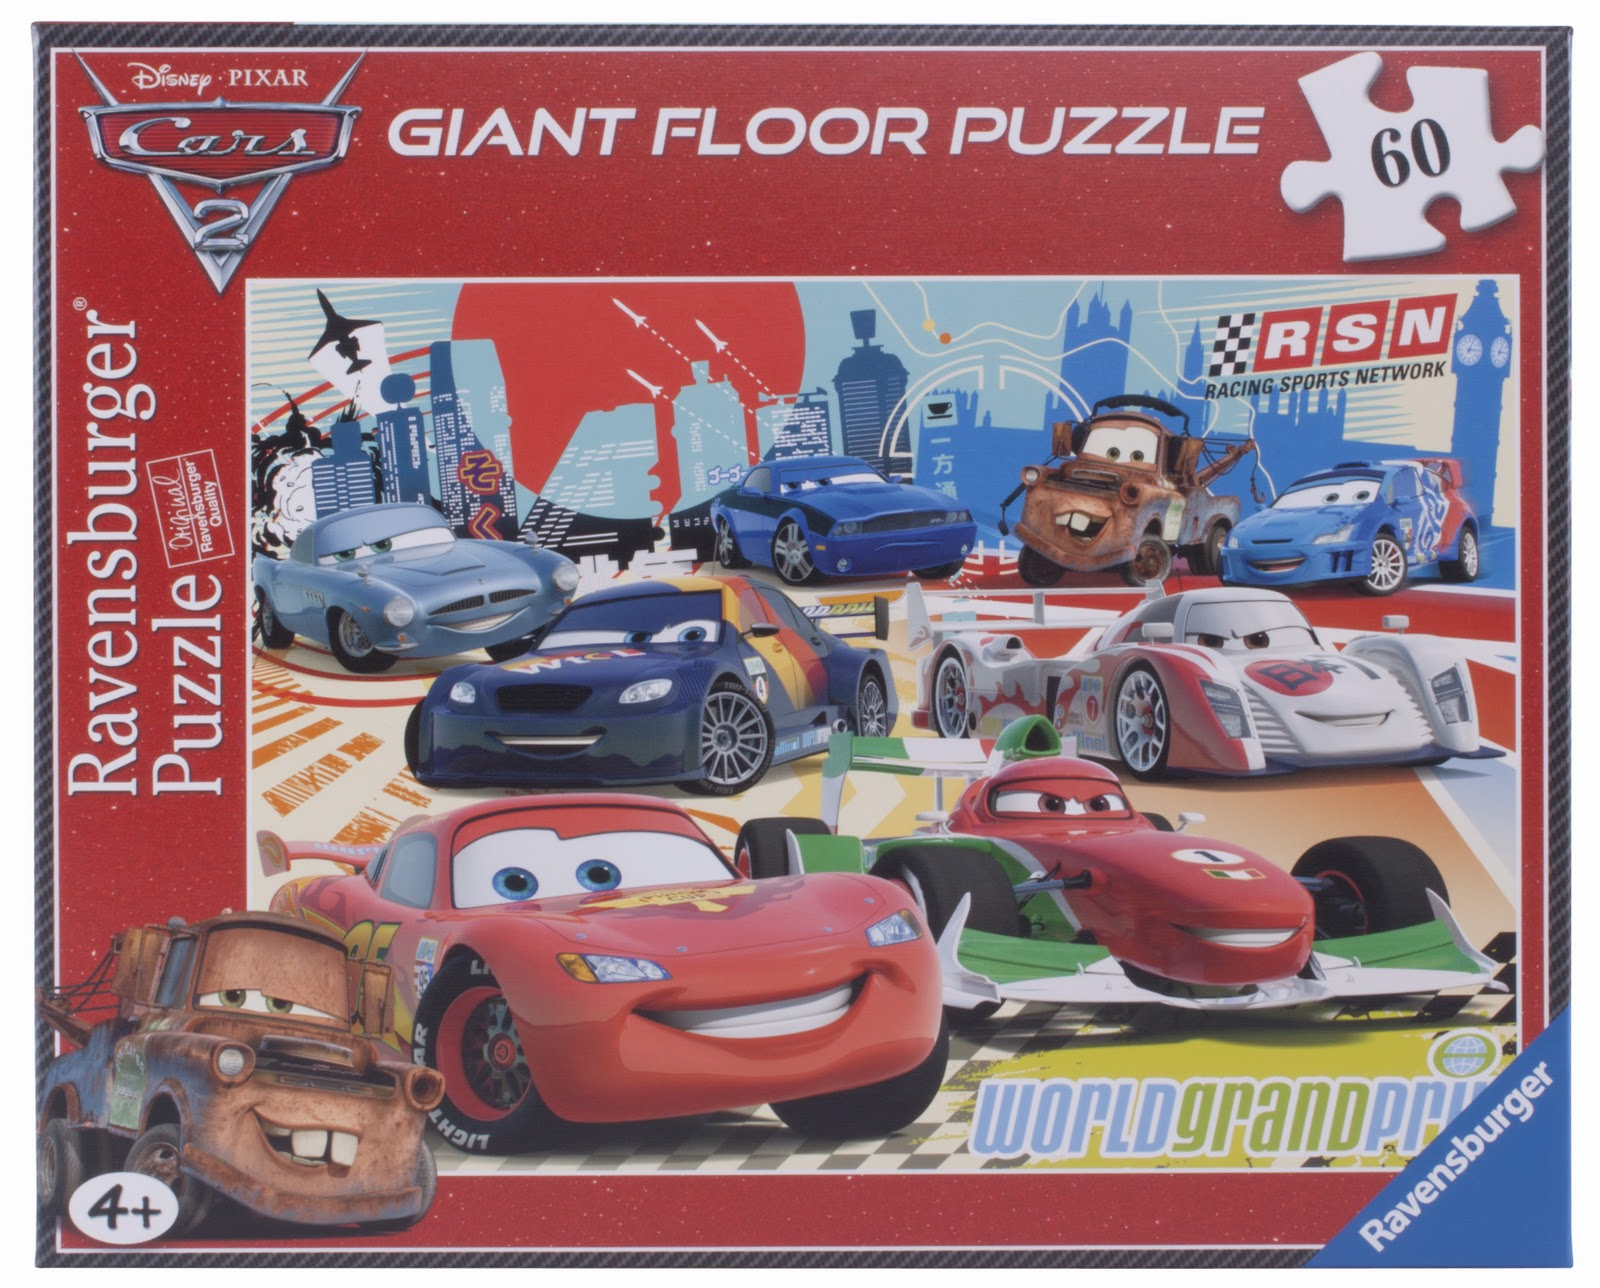 ca5341ee0f6 He was of course delighted to open the parcel and see the Disney Cars 2  puzzle. He & his sister soon had the puzzle together. They worked together  and there ...